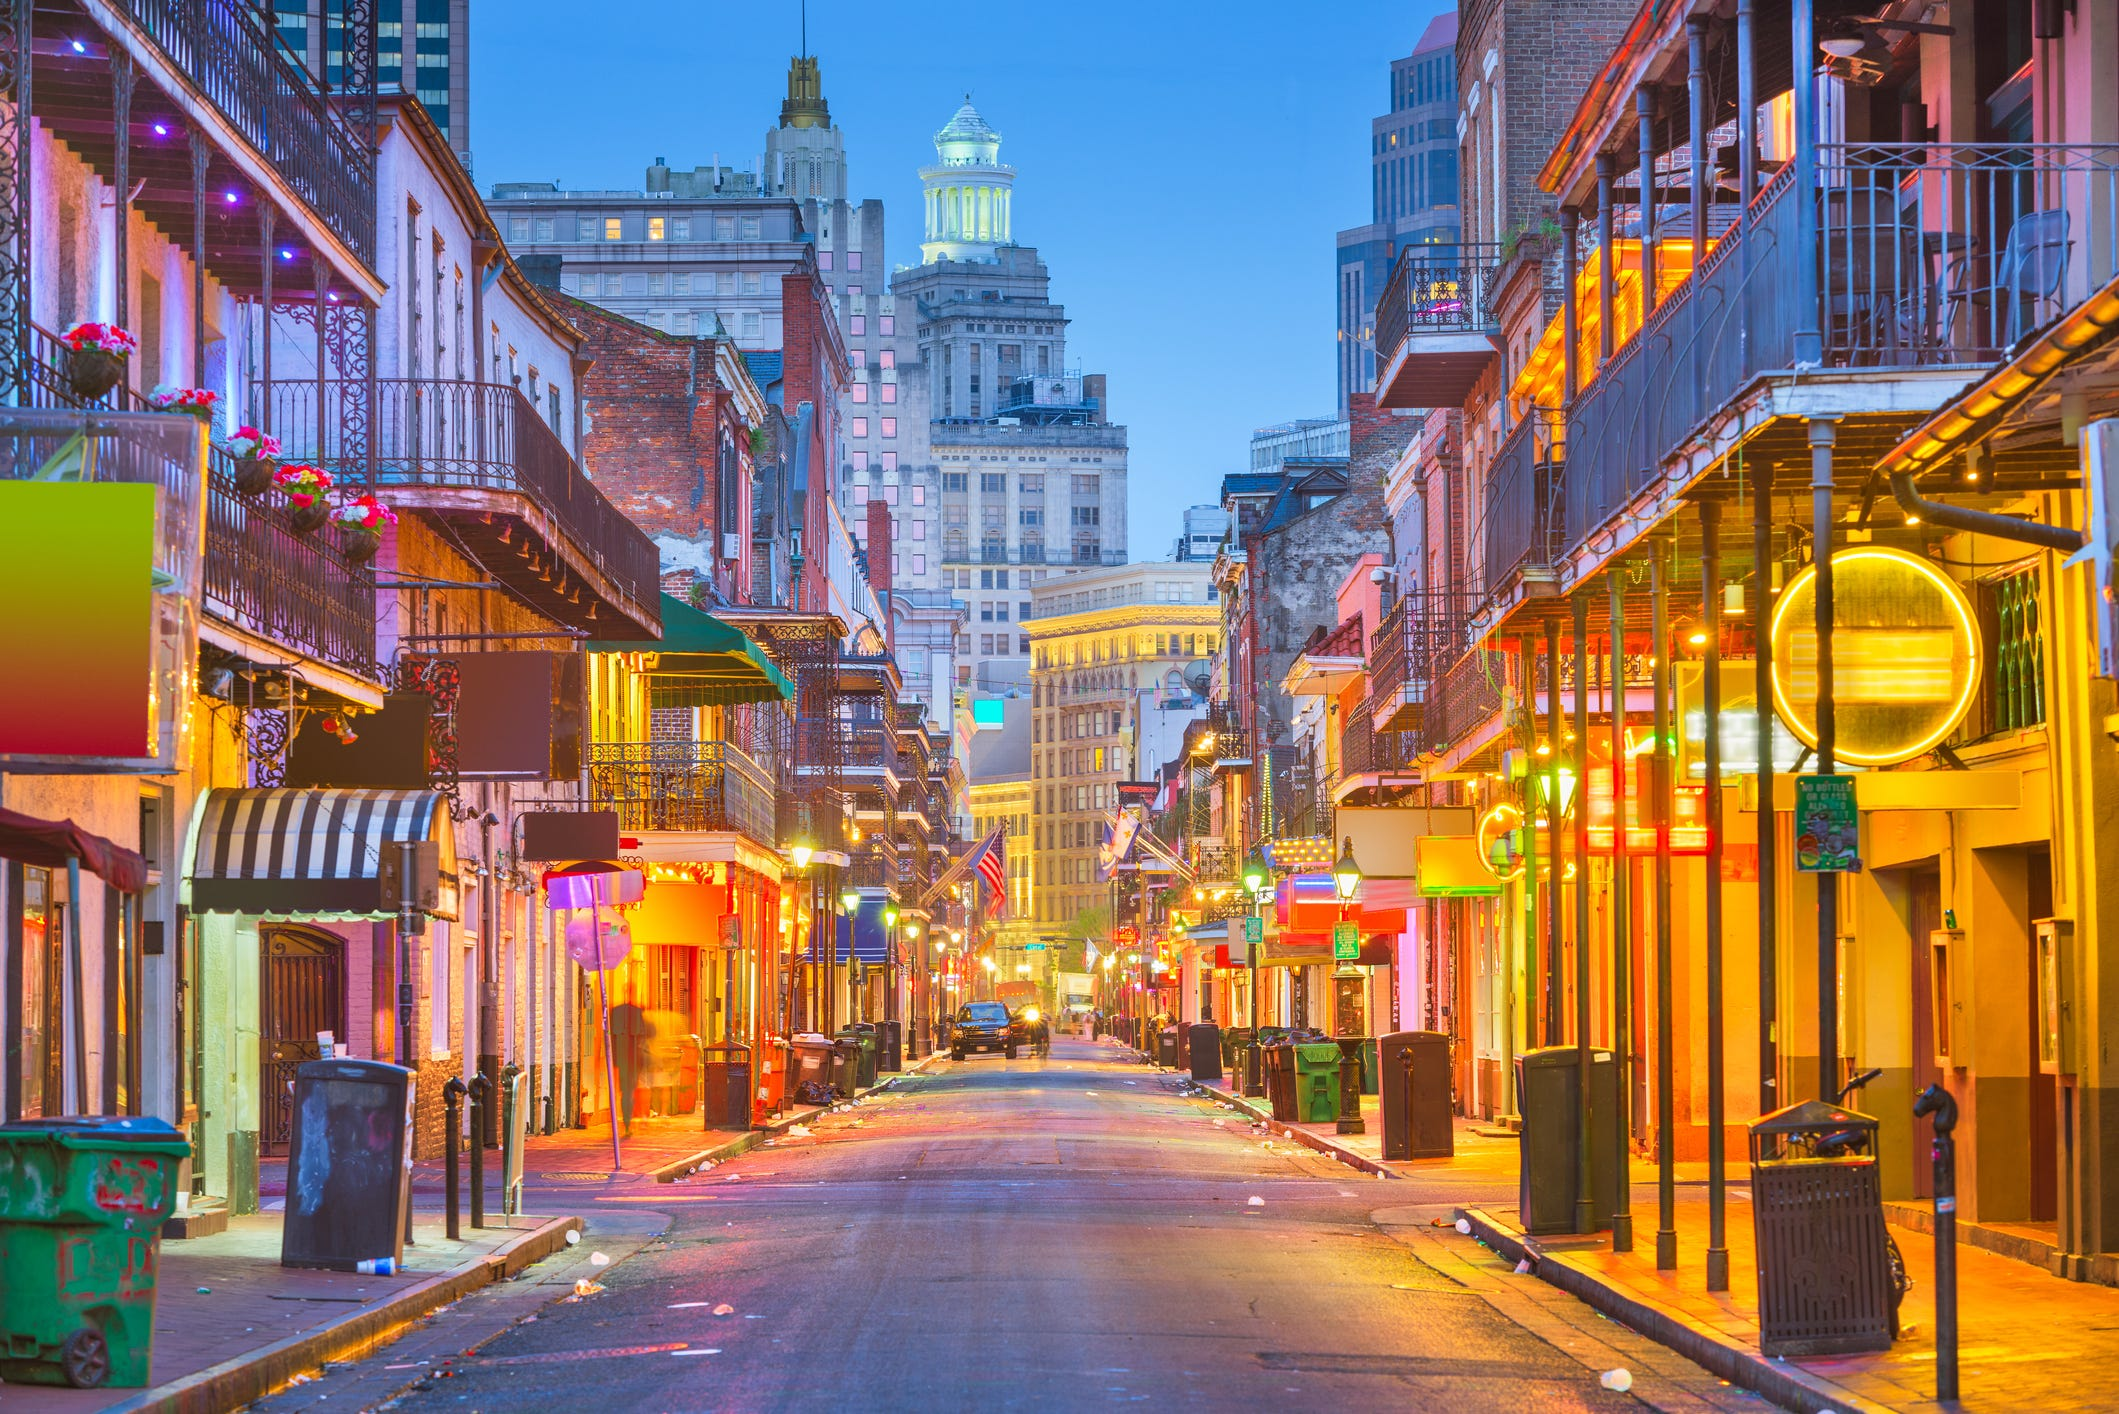 "Slide 2 of 7: 7. New Orleans, Louisiana. New Orleans sits on the Mississippi River near the turquoise waters of the Gulf of Mexico. While it's too early to say what impact the pandemic will have on its signature Mardi Gras celebration, travelers are also drawn to the city for its music scene and array of restaurants. As the New Orleans tourism site puts it, ""even if covid-19 has slowed our roll a little bit, the calendar remains packed with special events and plenty of things to do in New Orleans."""